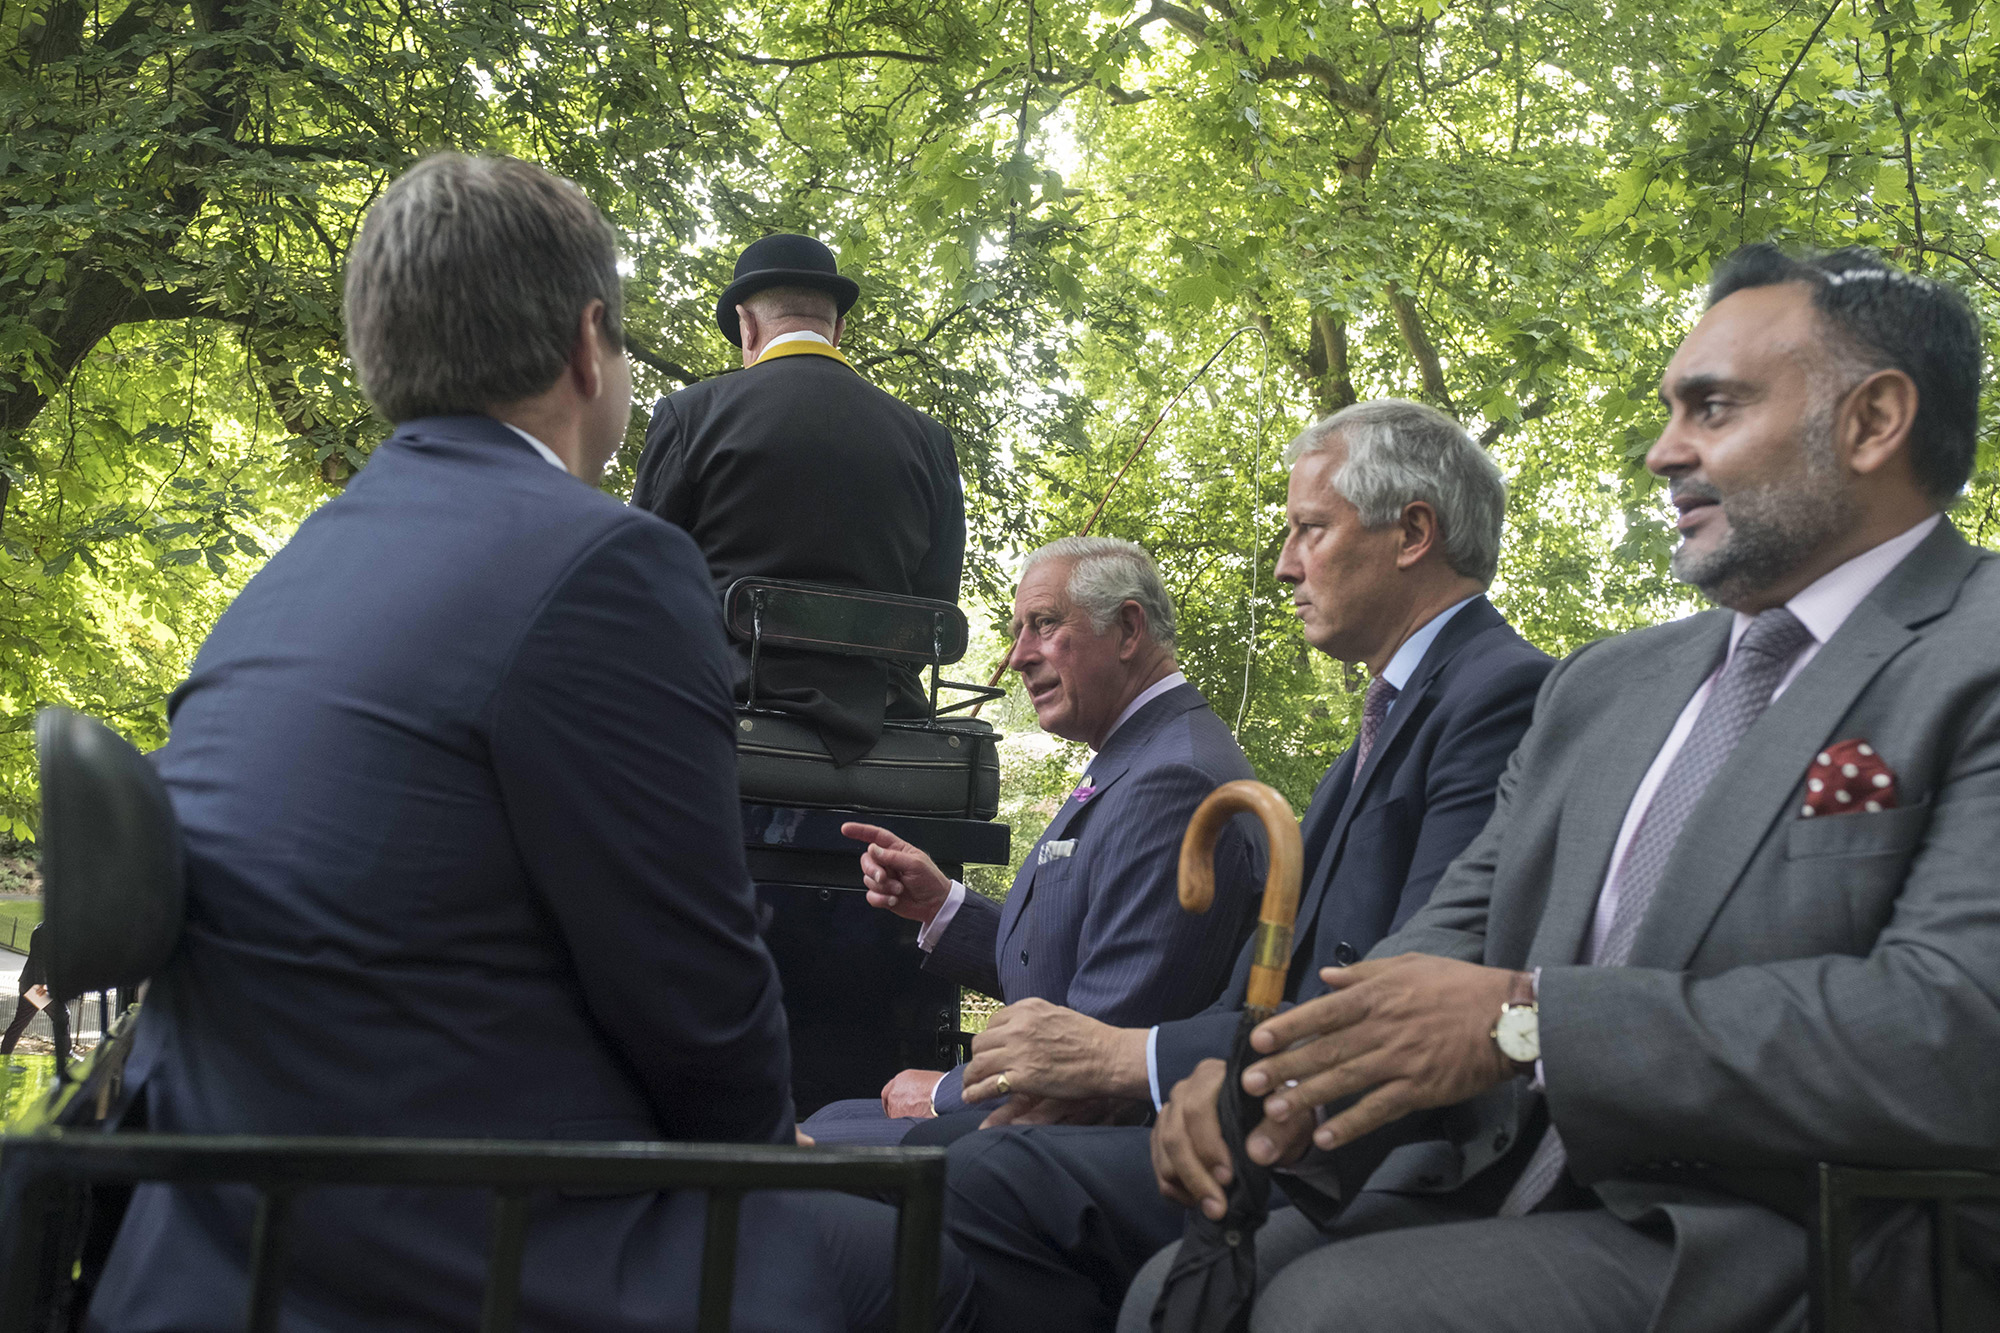 BRITAIN London 13/07/2017HRH The Prince of Wales with the Shire Horses of Operation Centaur at the launch of the Royal Parks Charity©Paul Stewart 2016@@PS_HRH1032.JPG